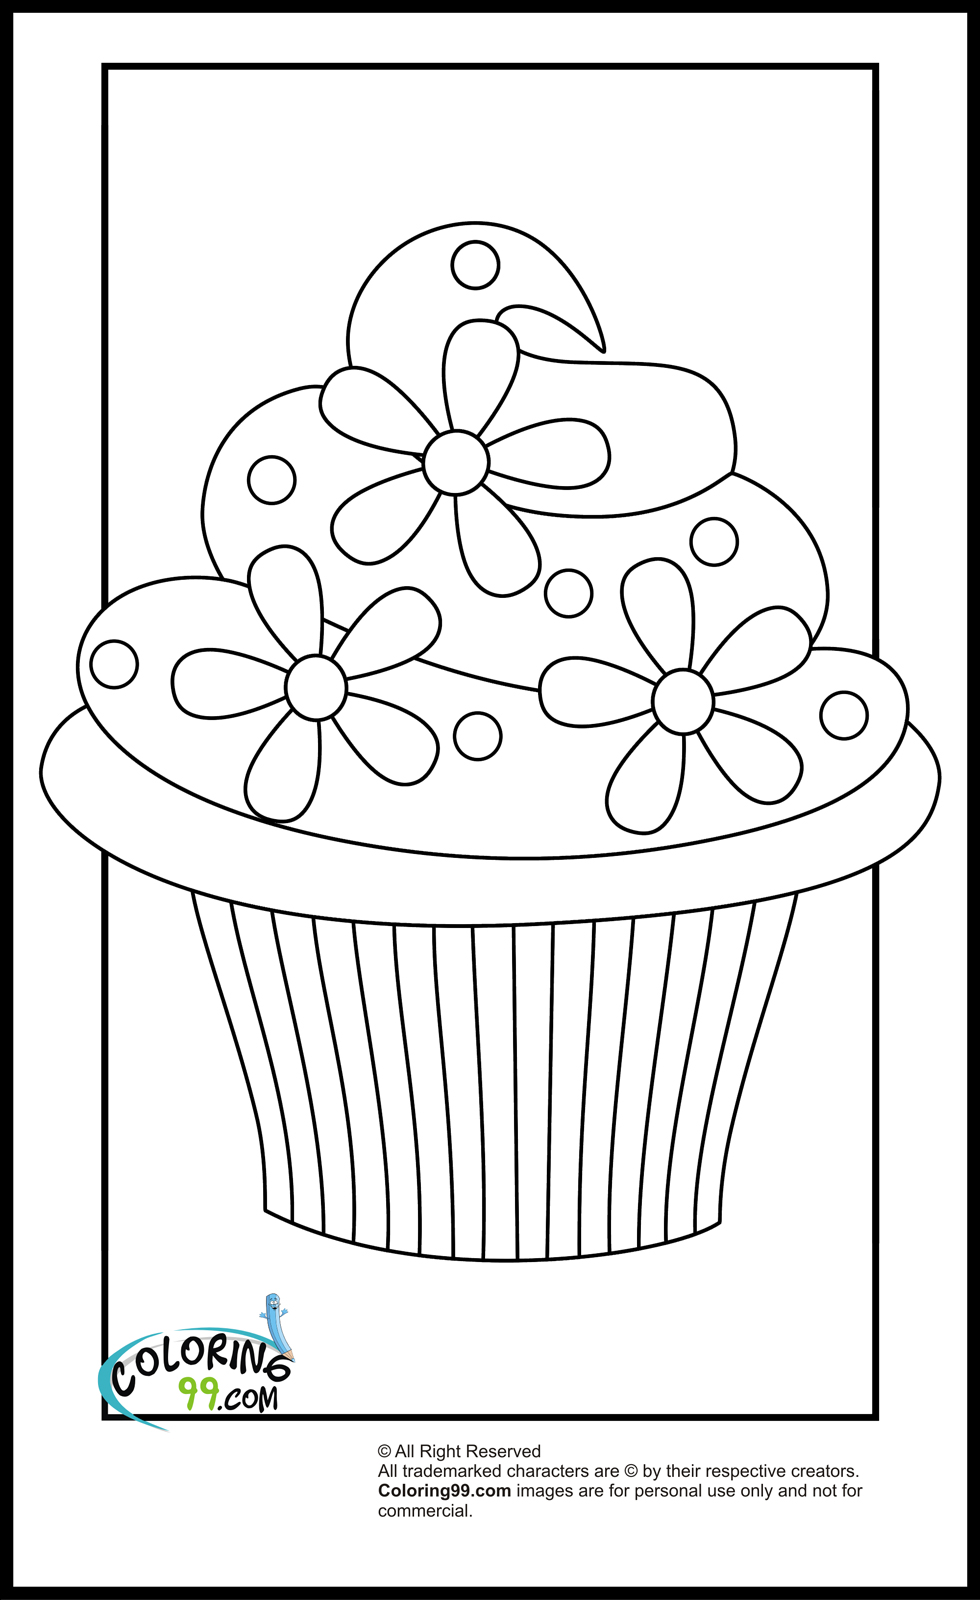 free printable kid coloring pages | Cupcake Coloring Pages | Minister Coloring